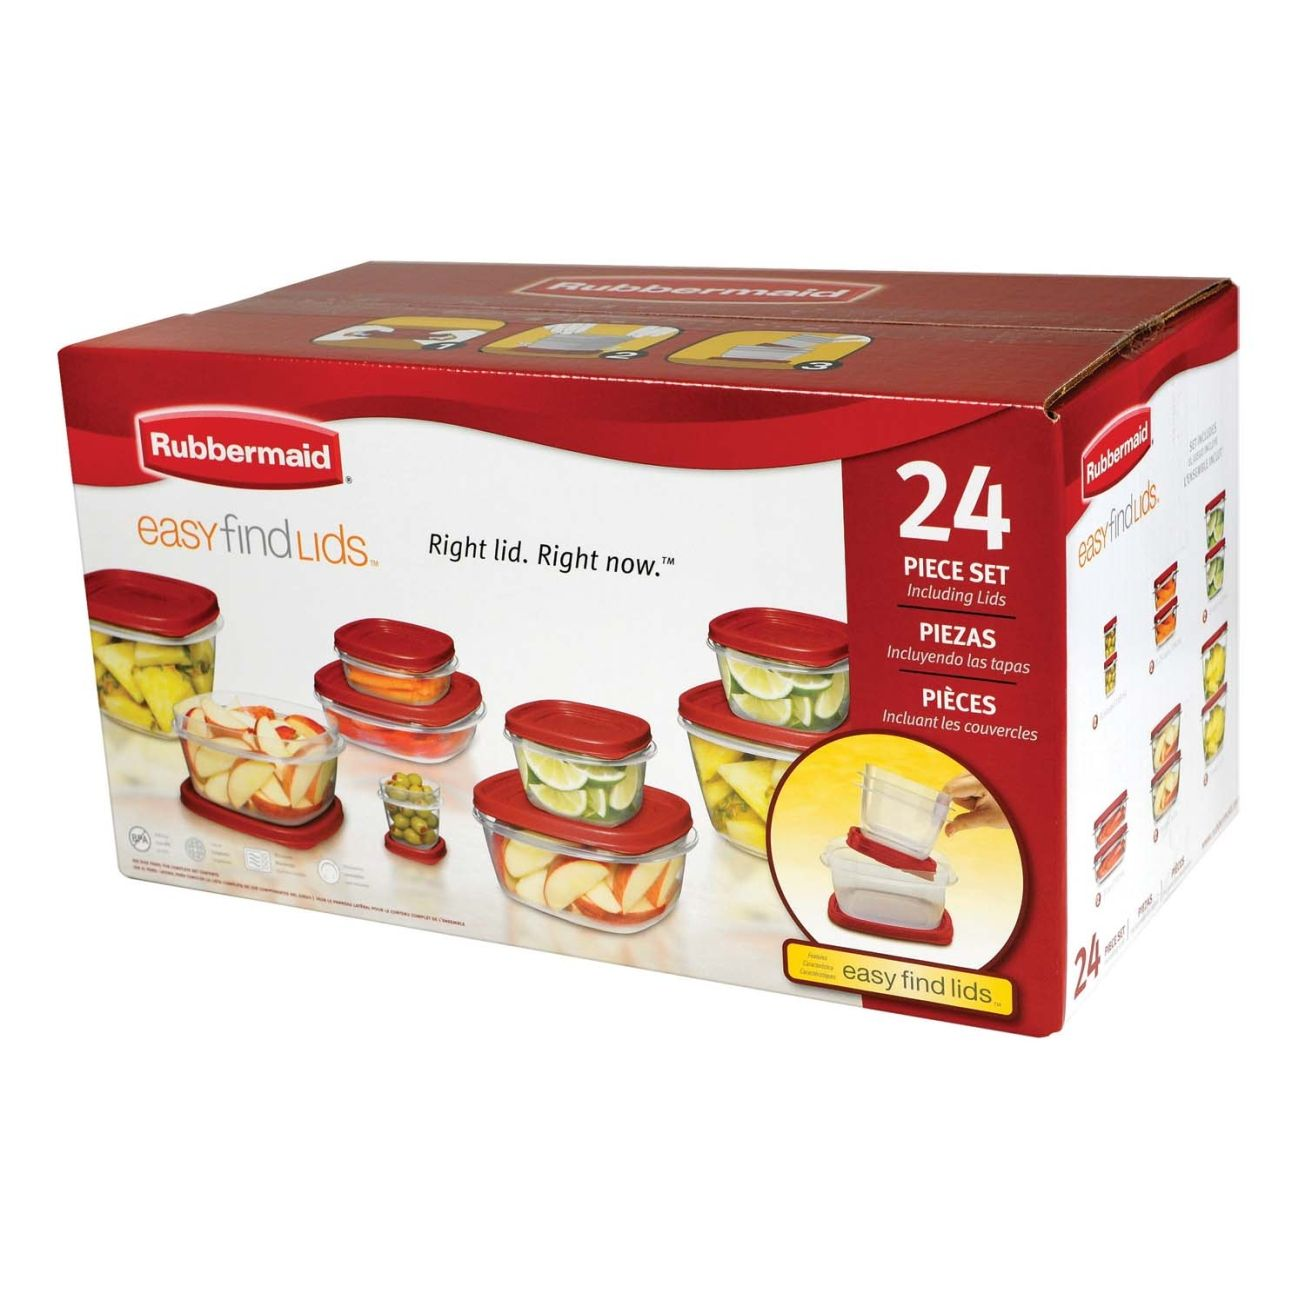 Rubbermaid Easy Find Lids 24 Piece Food Container Set 1779217 Plastic Storage